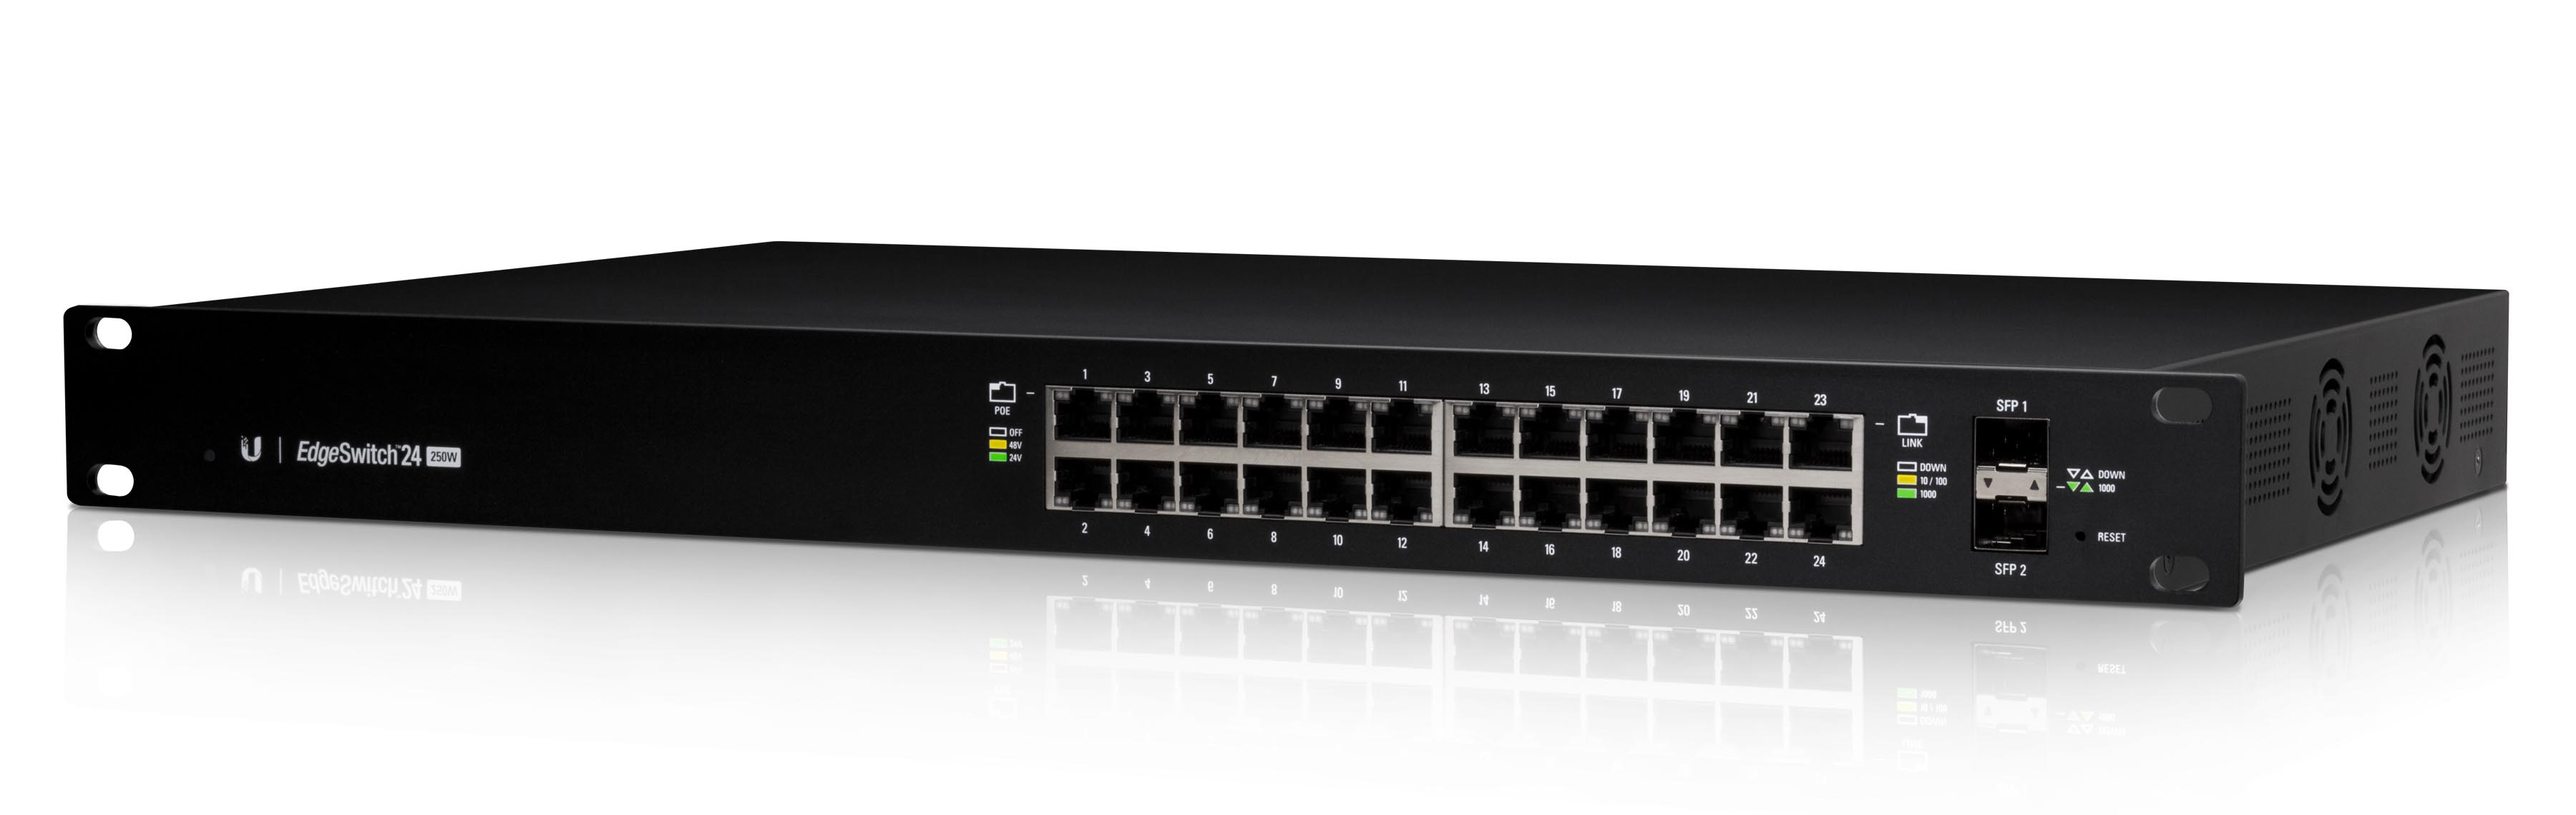 UBNT Edge Switch 24 Port 250W PoE+ Layer3 Yönetilebilir Switch